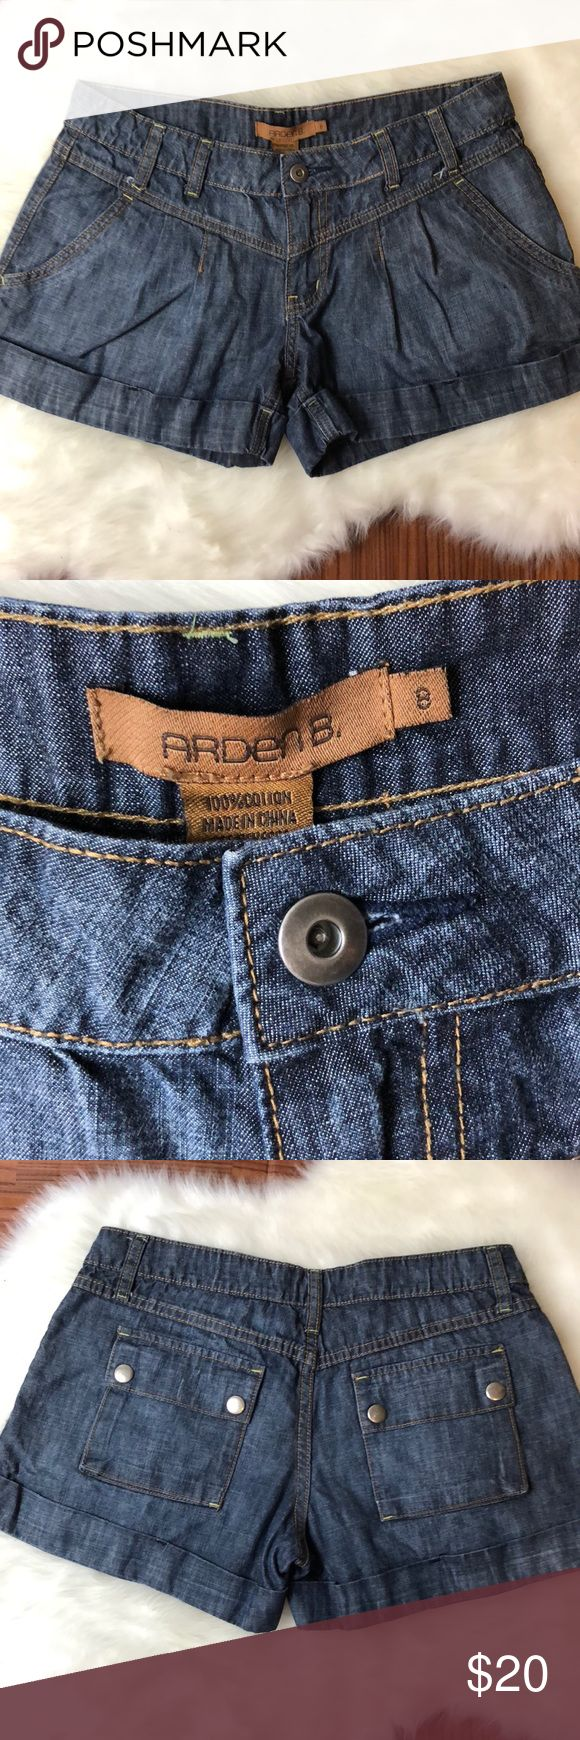 """ARDEN B. Dark Wash Denim Jeans Shorts Excellent used condition. Denim jeans dark wash 100% cotton shorts by Arden B. RN 787749 Note: some minor scuff on metal buttons on back (see photo).  Waist (across) 15""""  Inseam 3""""  Rise 7.5"""" No trades.  We are a smoke and pet-free home. Arden B Shorts Jean Shorts"""